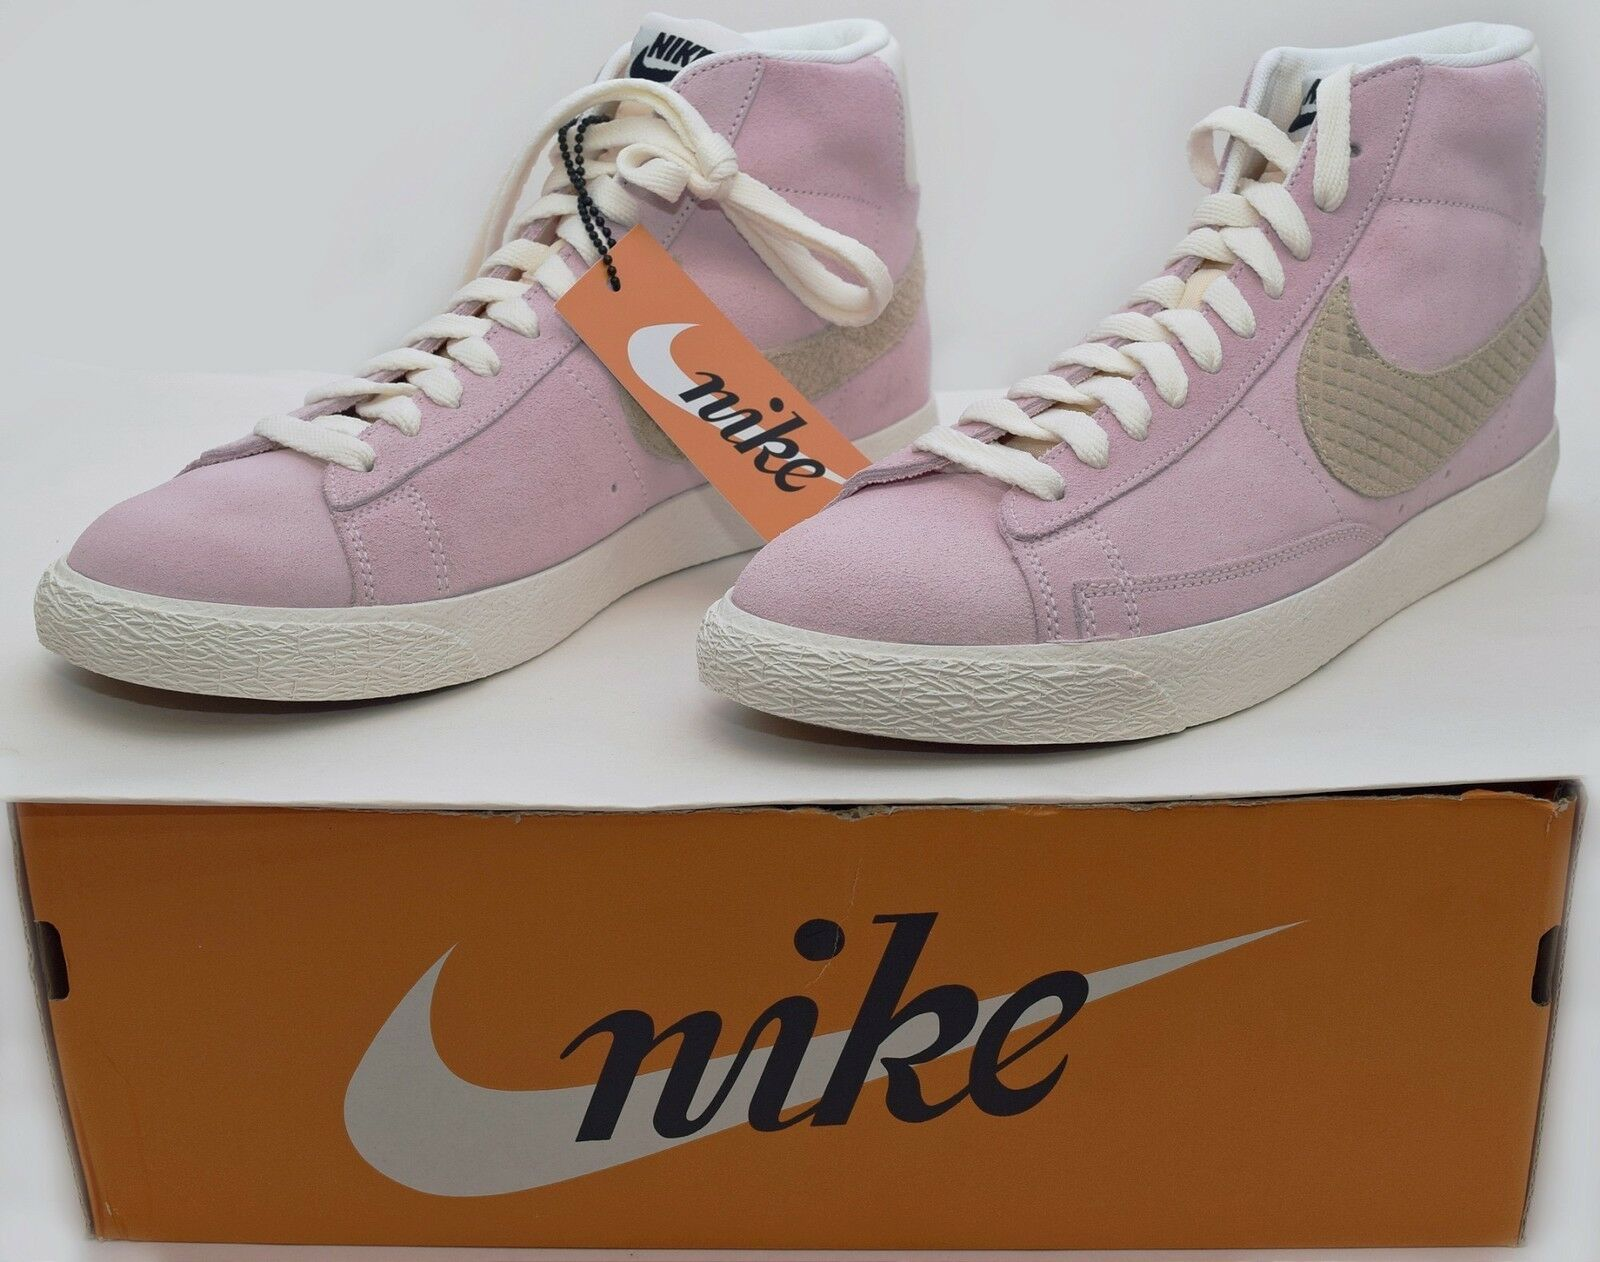 NEW Nike Mens Size 10.5 Shoes Pink Blazer Mid Premium Shoes 10.5 Ice Cream Pack 638322-601 8bfc56